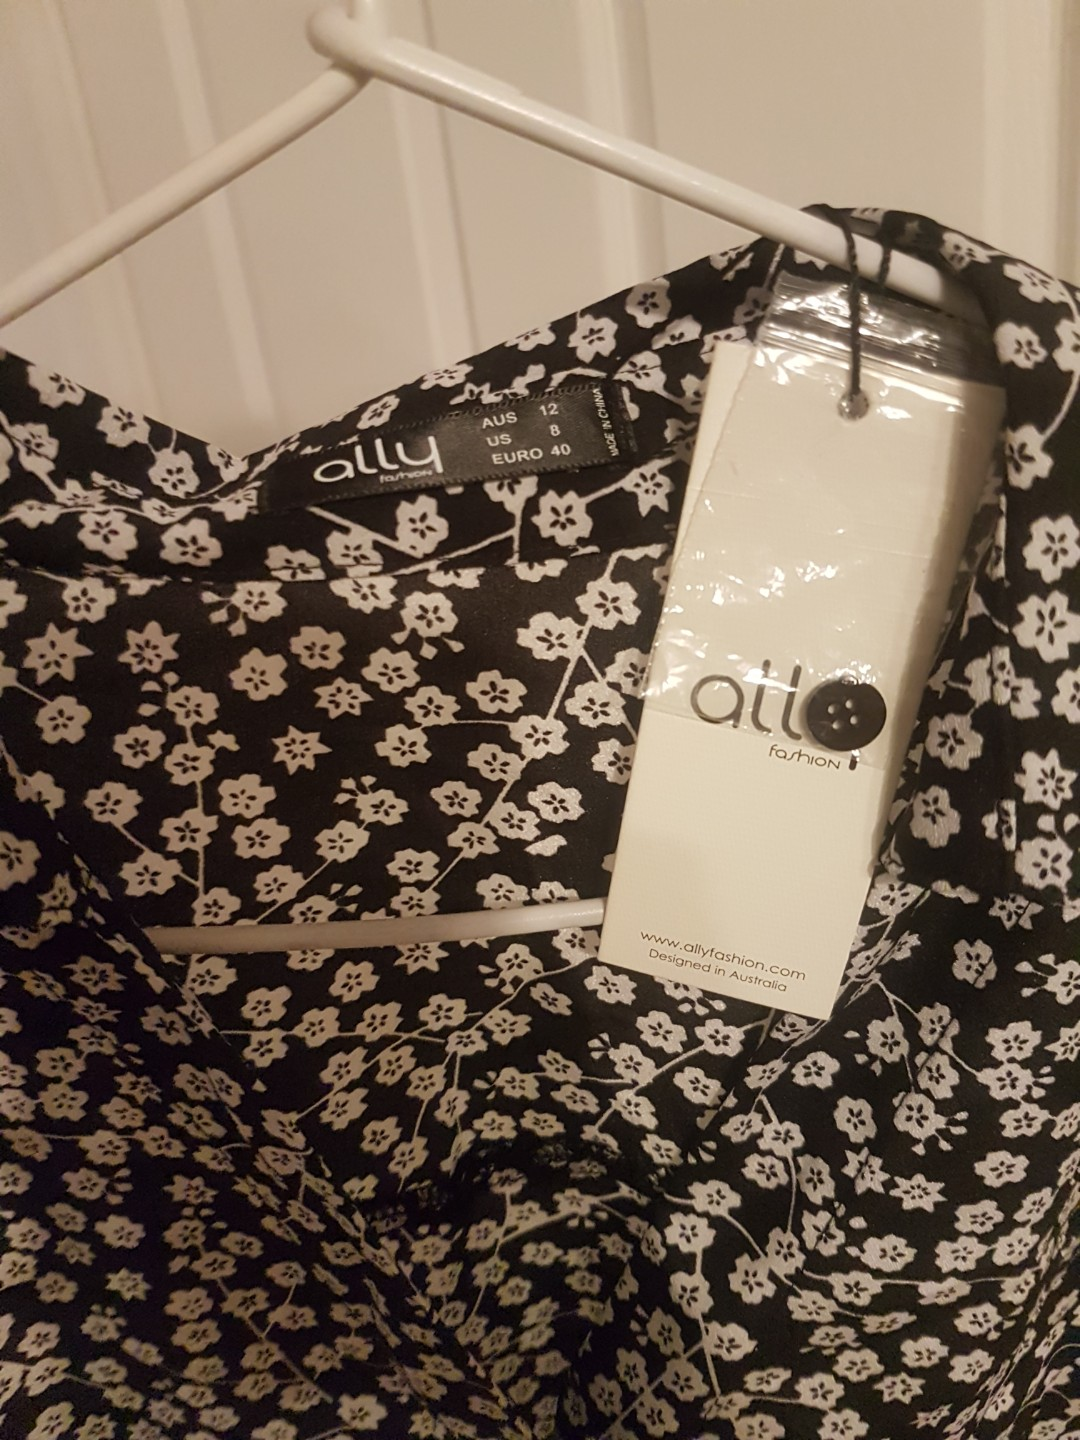 Black and white floral cropped button up collar shirt